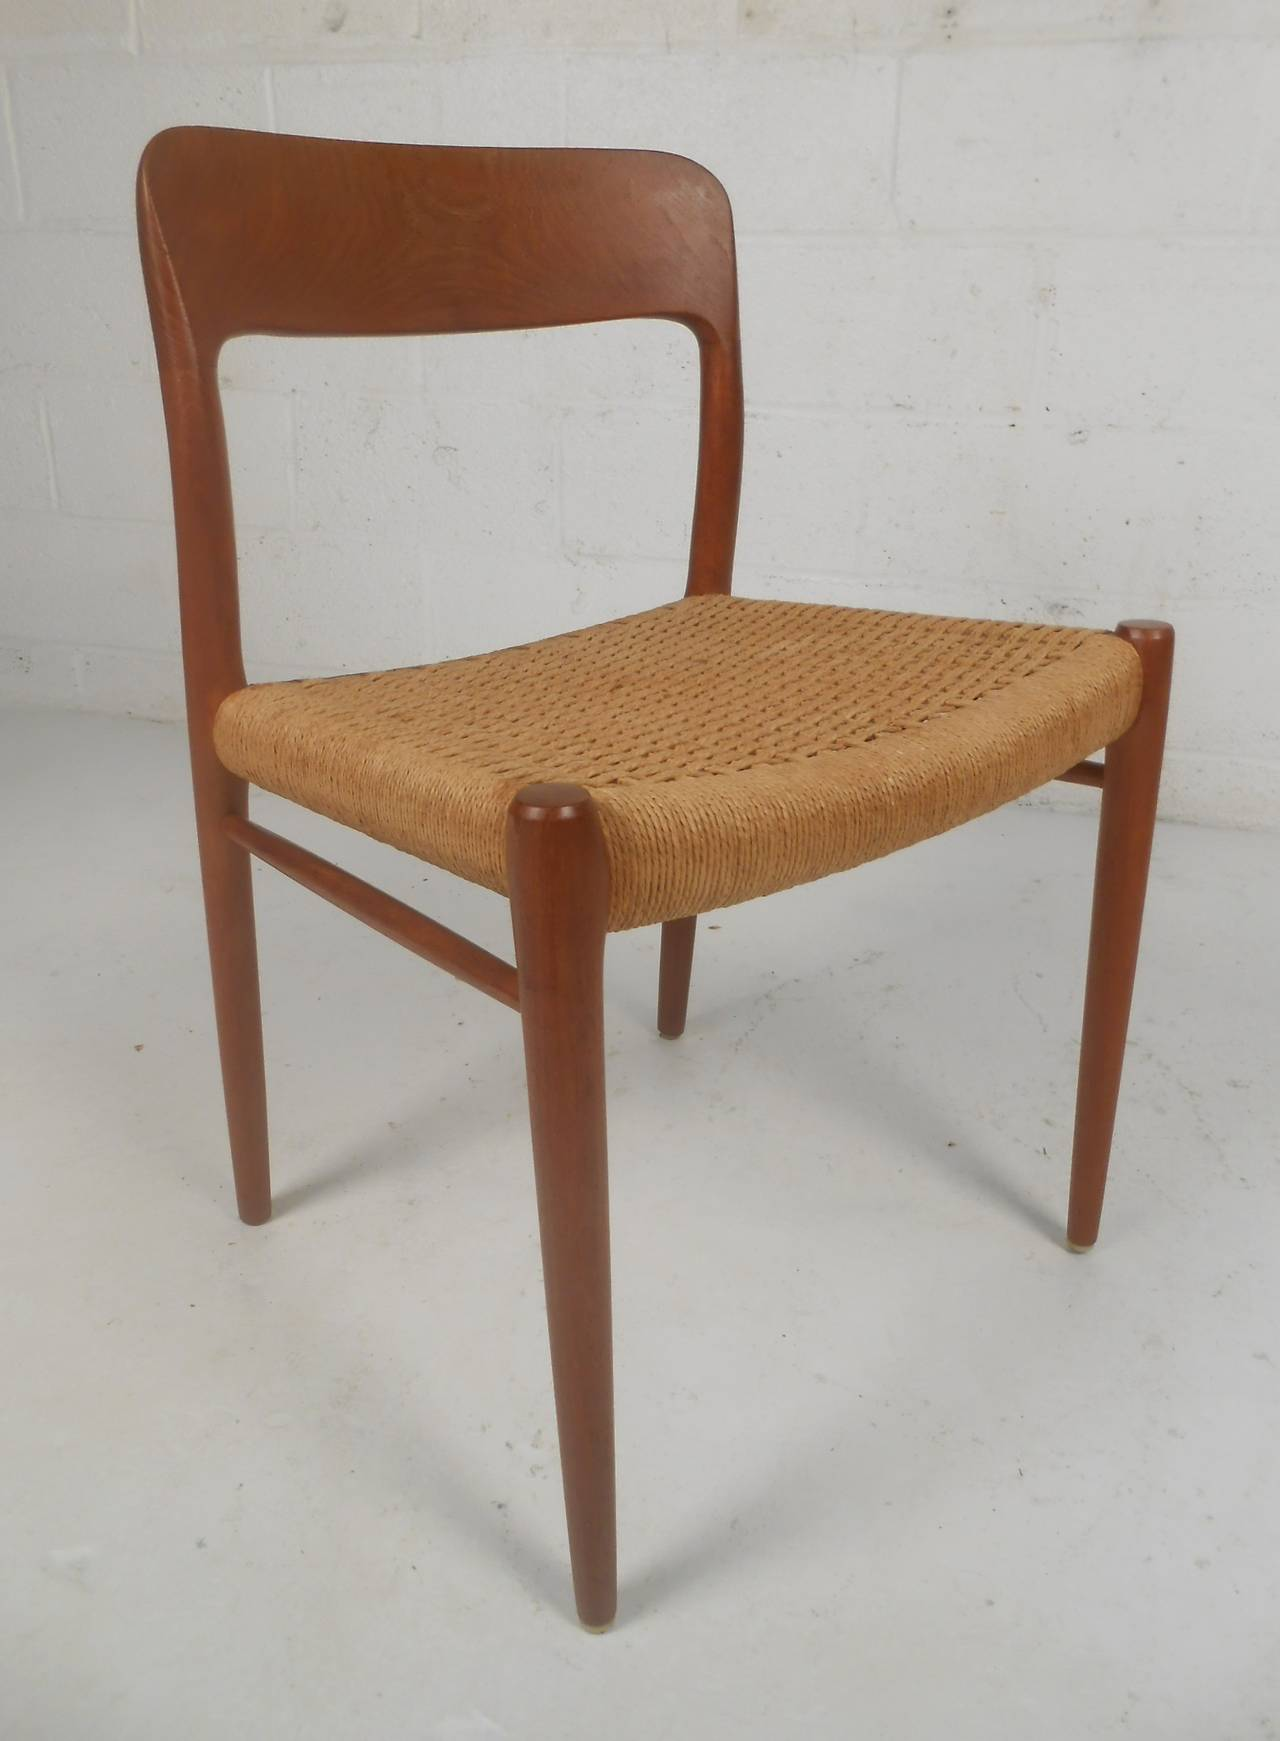 N o moller danish dining chairs for sale at stdibs